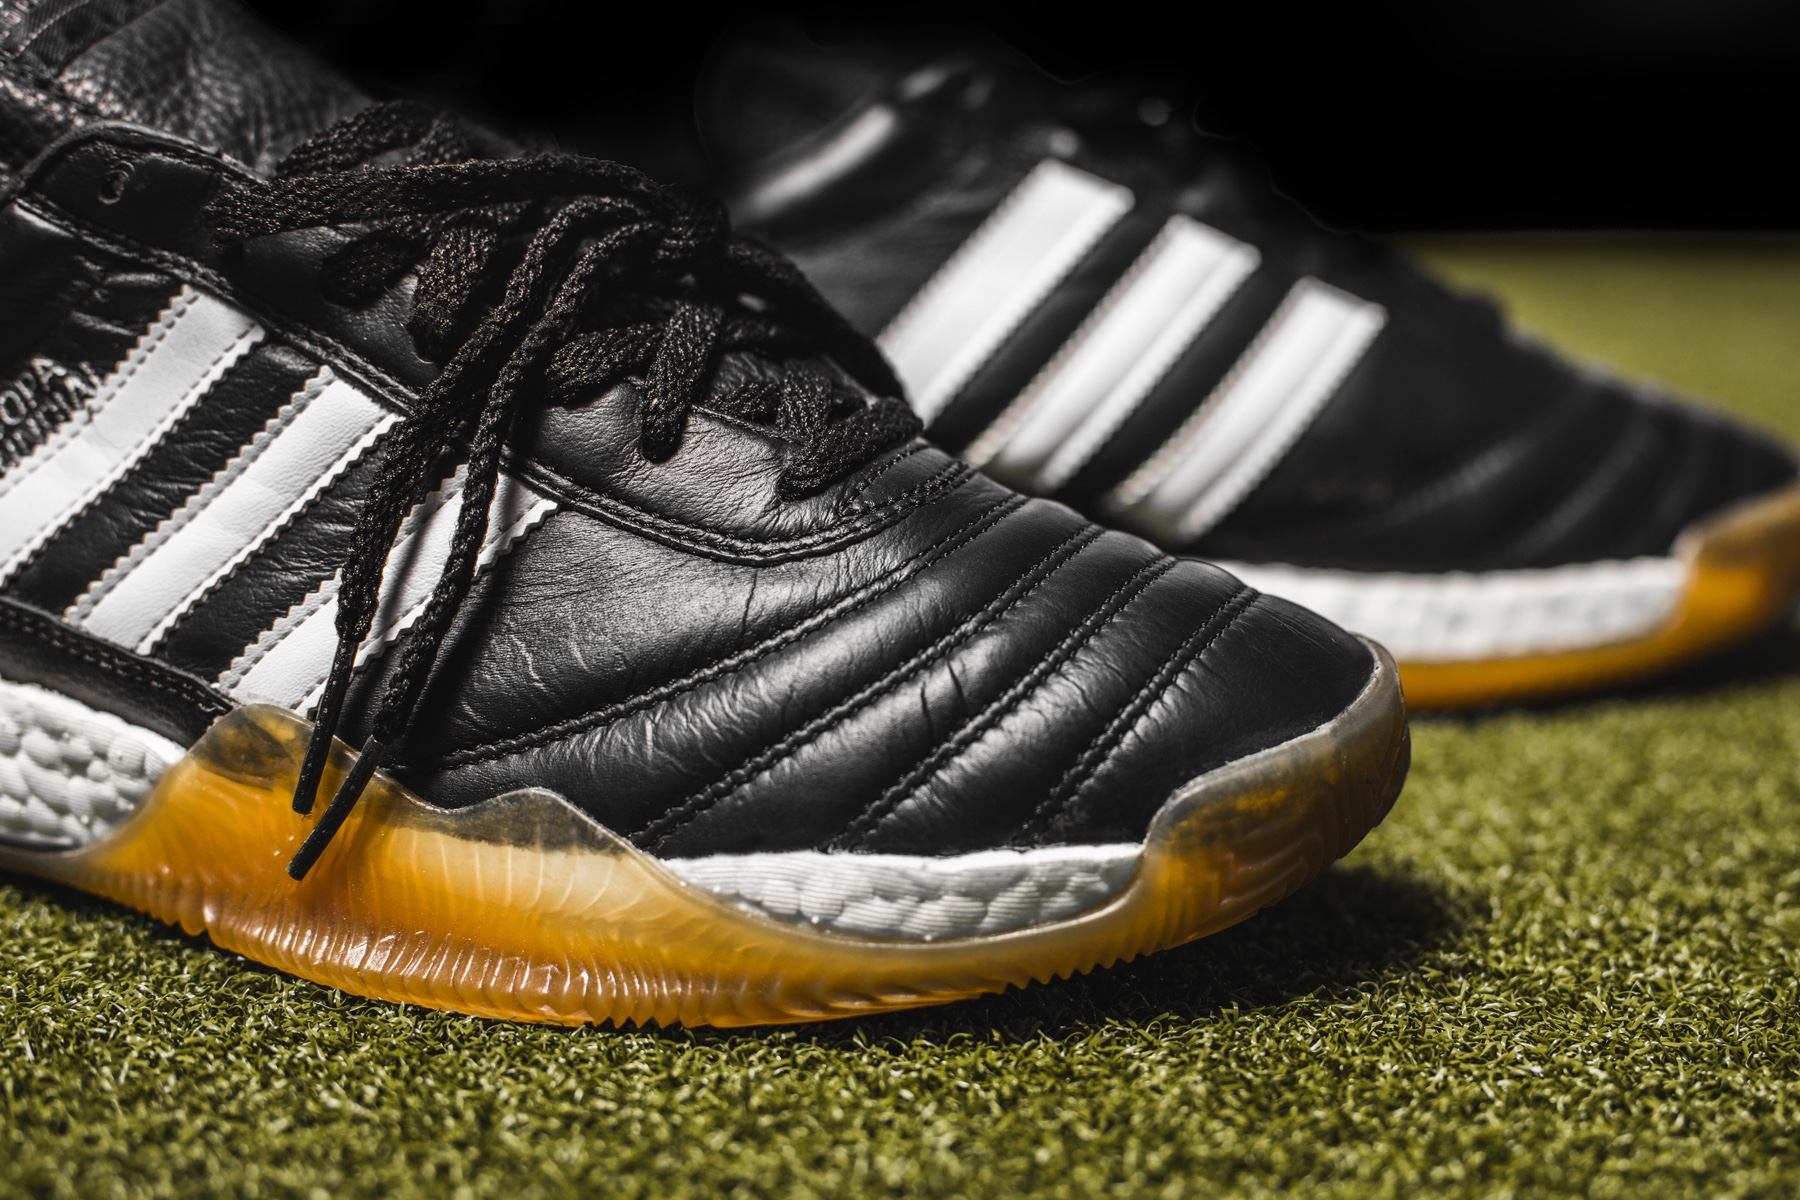 http---hypebeast.com-image-2017-04-adidas-copa-mundial-cleat-shoe-surgeon-2